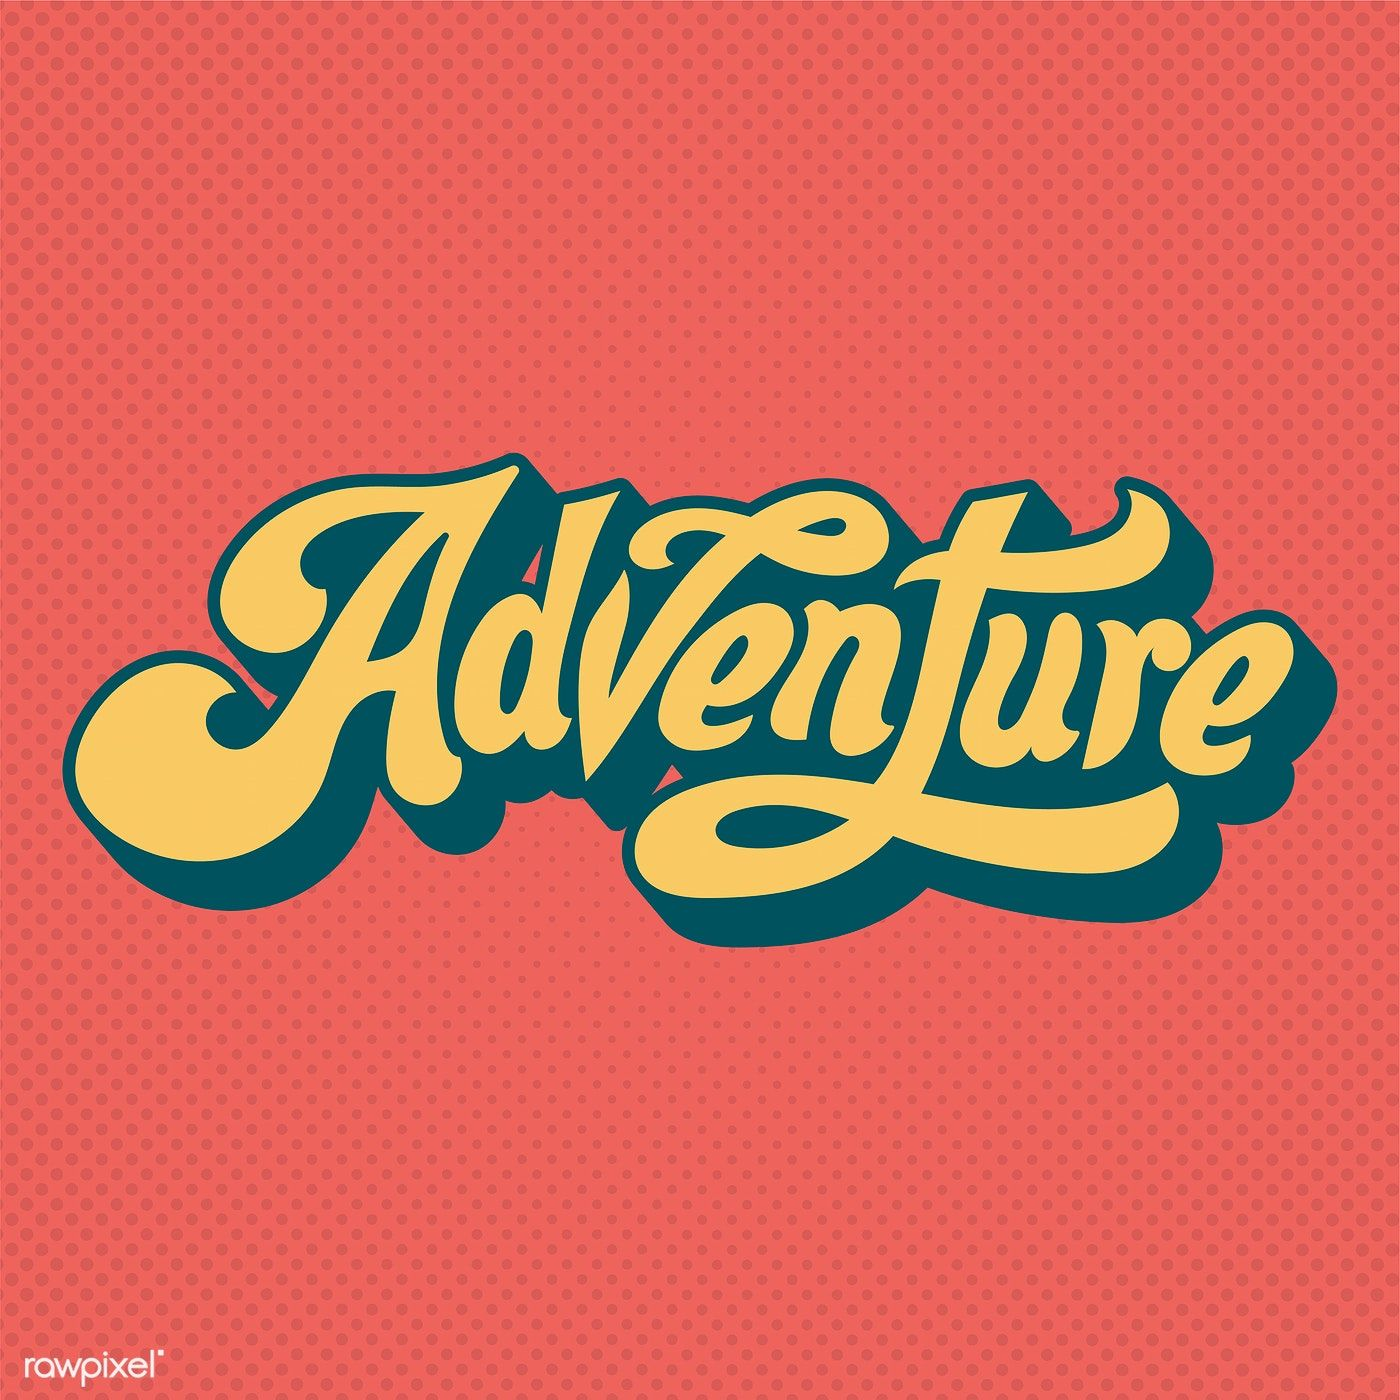 Adventure Word Typography Style Illustration Free Image By Rawpixel Com In 2020 Typography Design Inspiration Adventure Logo Typography